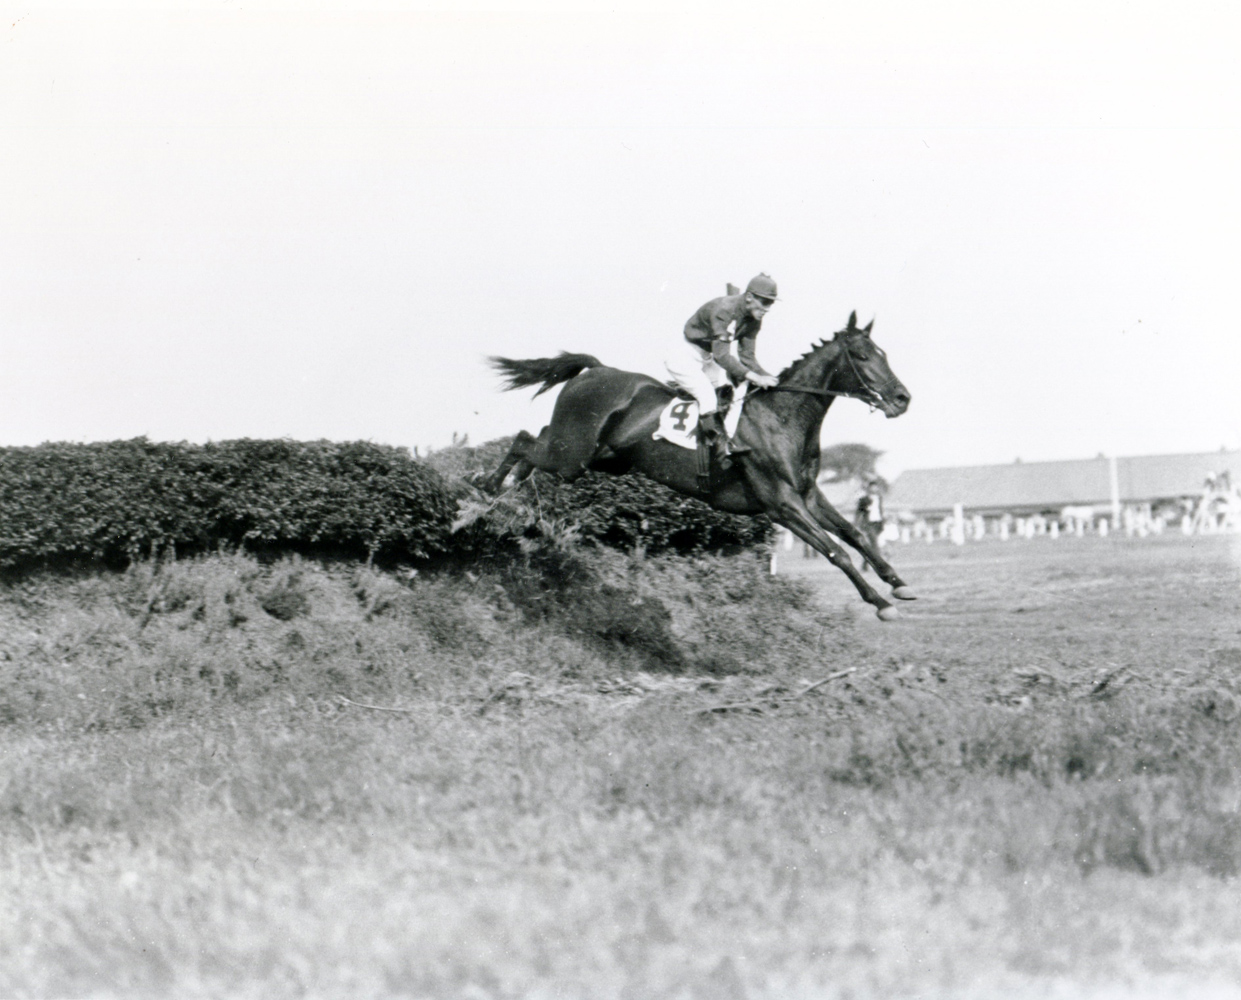 George Bostwick and Escapade clearing a jump in a steeplechase event at Aqueduct, September 1932 (Keeneland Library Cook Collection/Museum Collection)